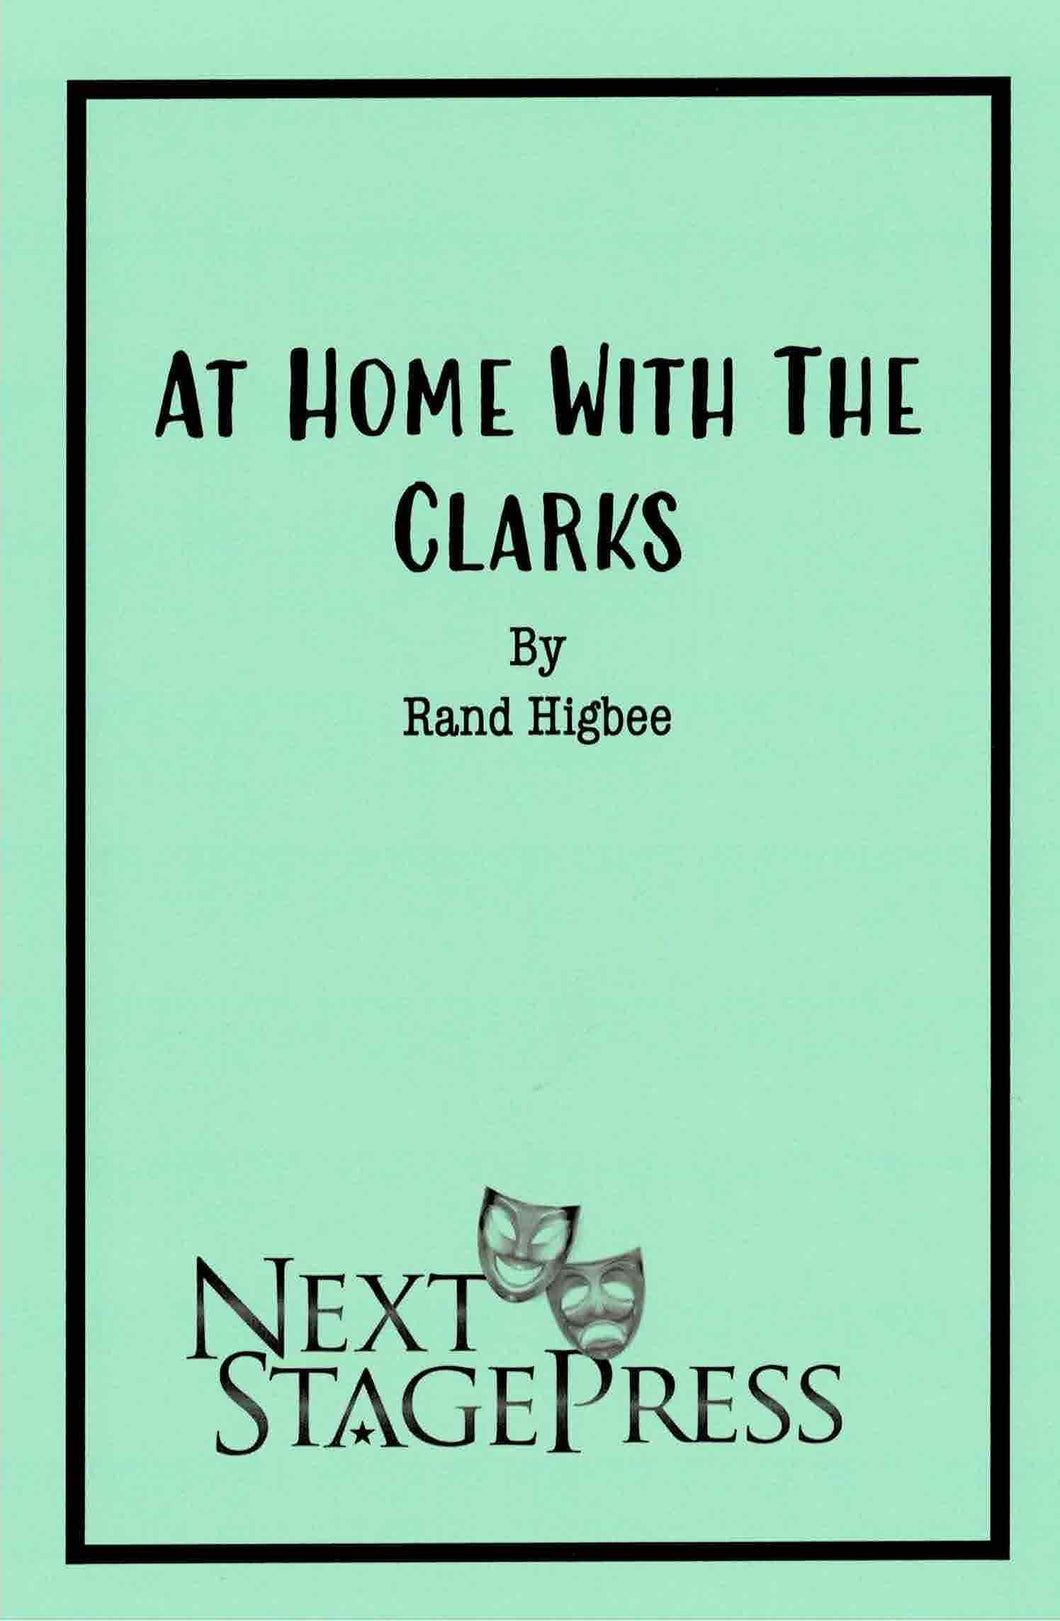 At Home With the Clarks - Digital Version